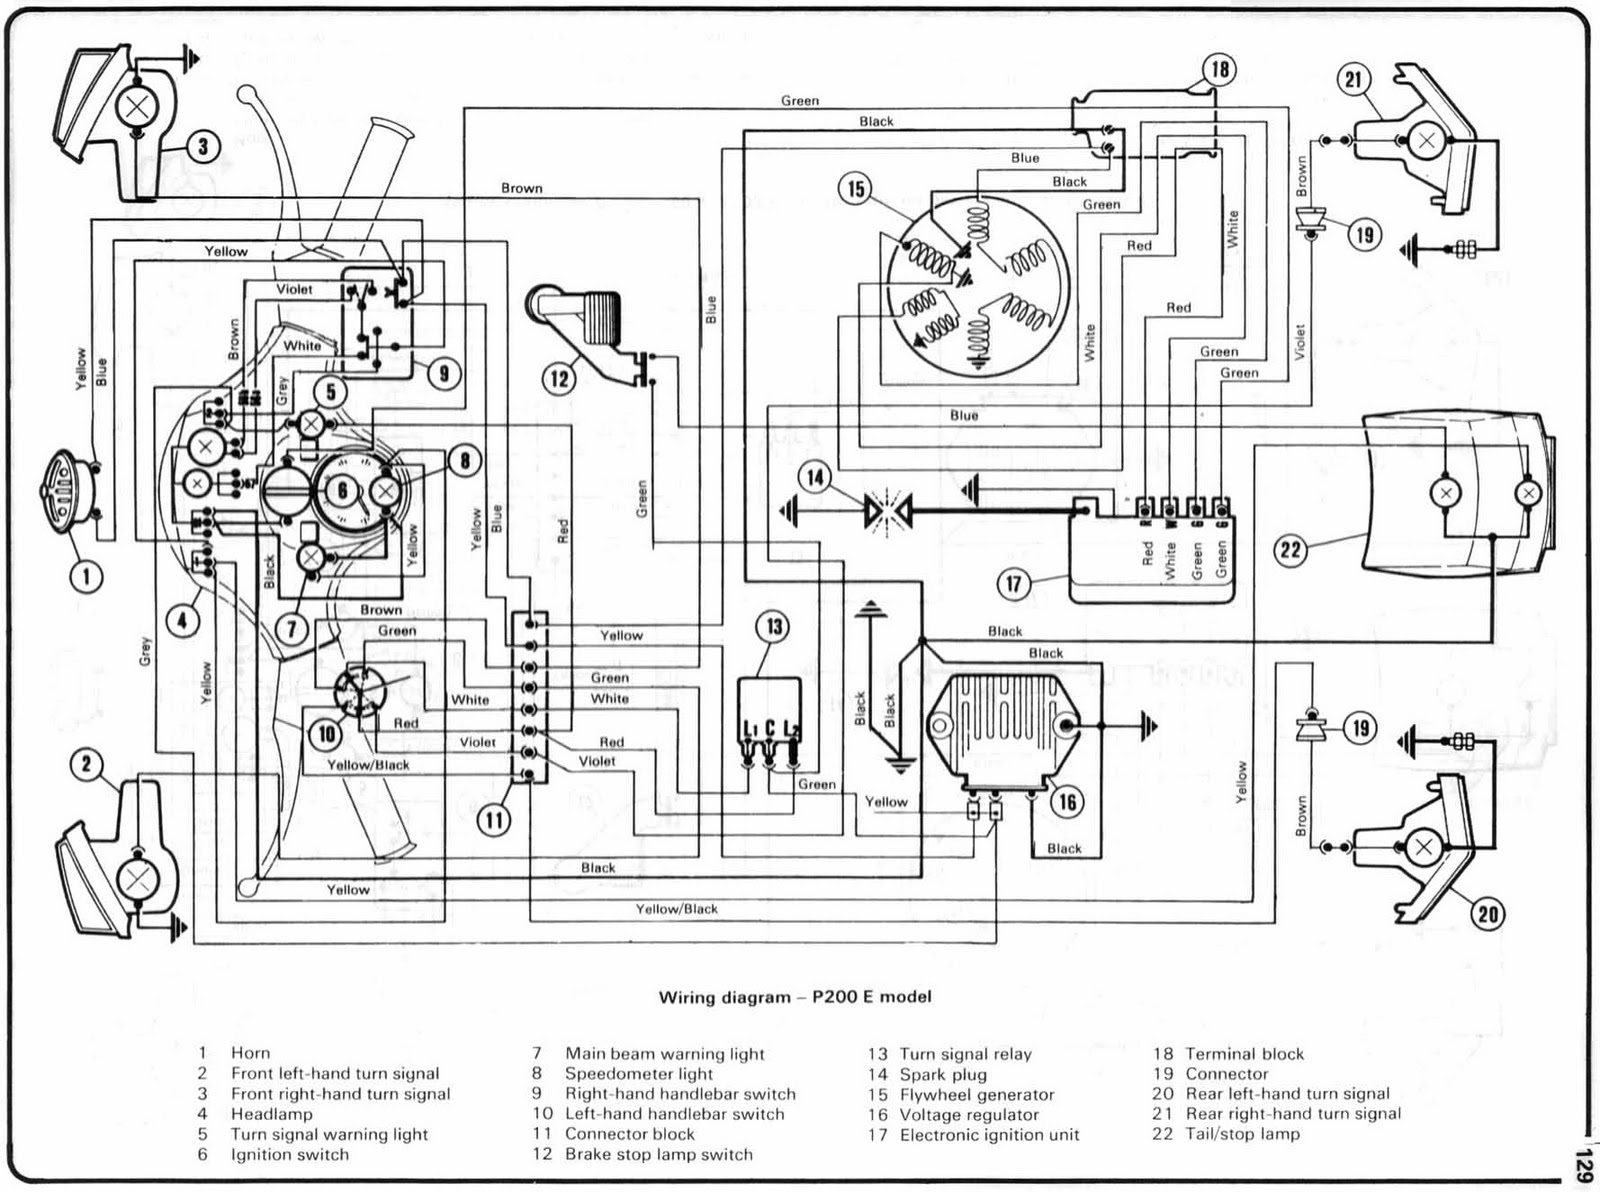 small resolution of wiring diagrams 911 vespa p200 e model wiring diagram simple wiring schematics hvac wiring schematics